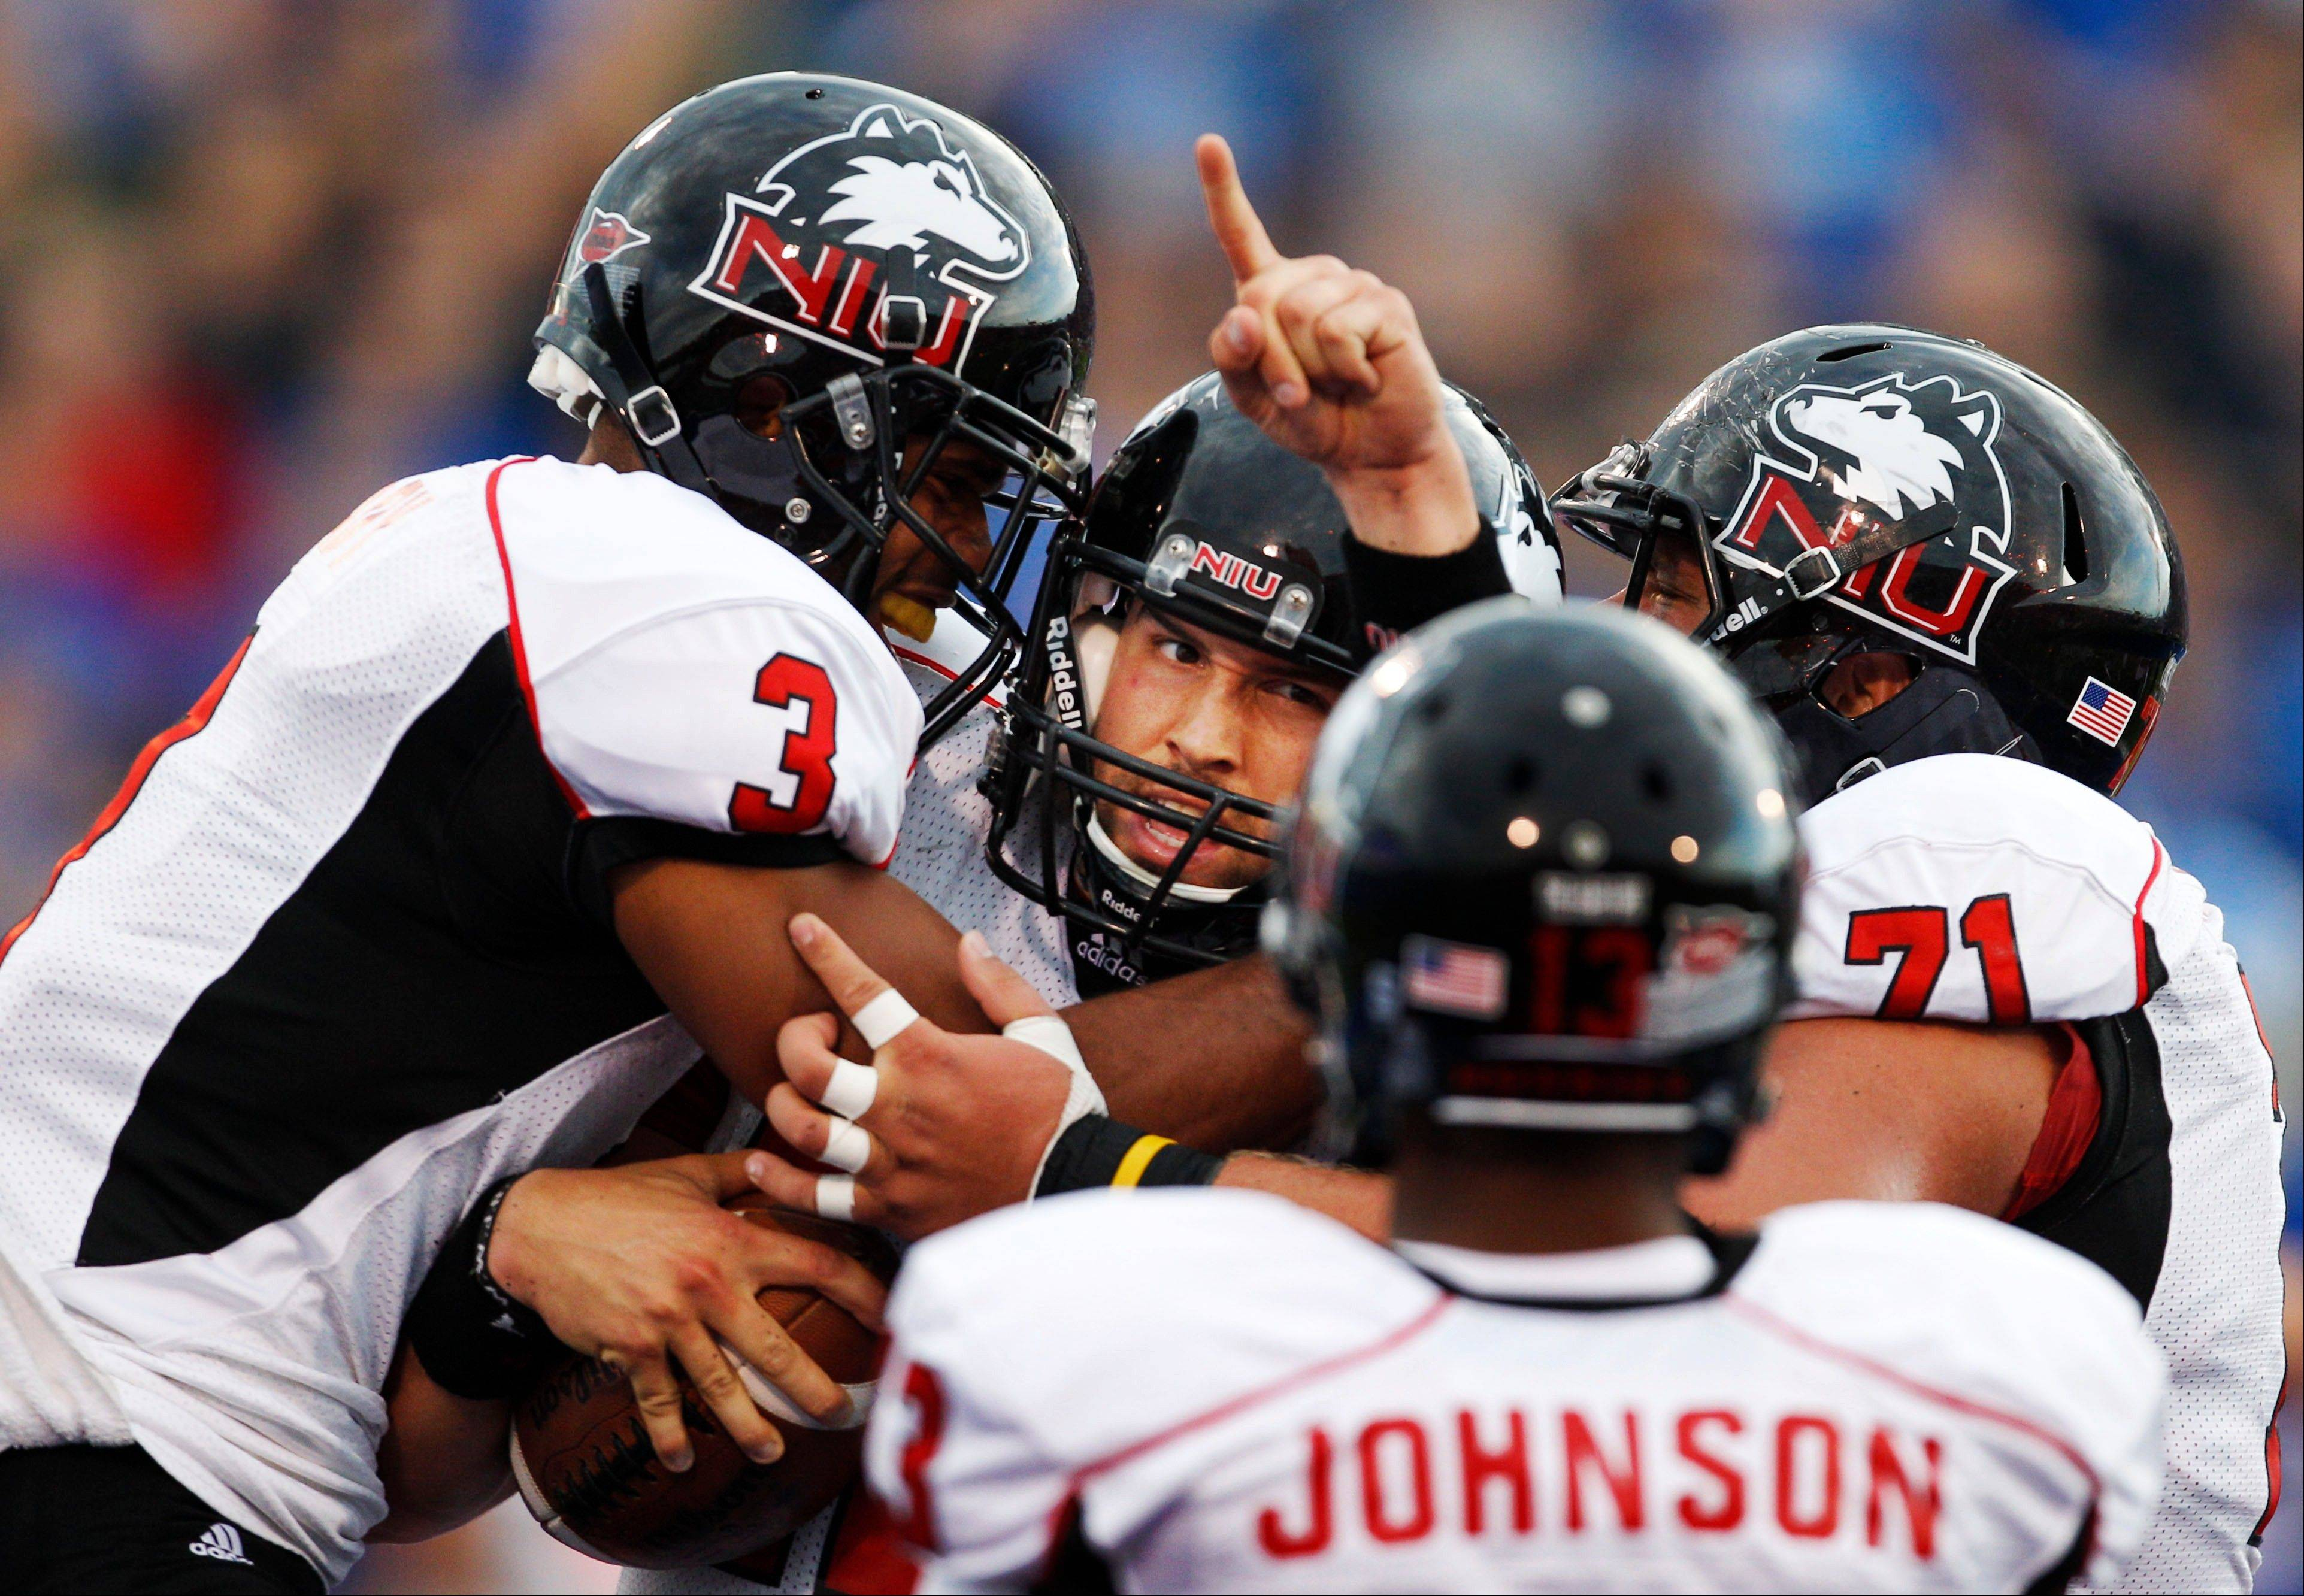 Northern Illinois quarterback Chandler Harnish, middle, celebrates a touchdown with teammates DeMarcus Grady (3) and Scott Wedige (71) Saturday during the first half against Kansas in Lawrence, Kan.